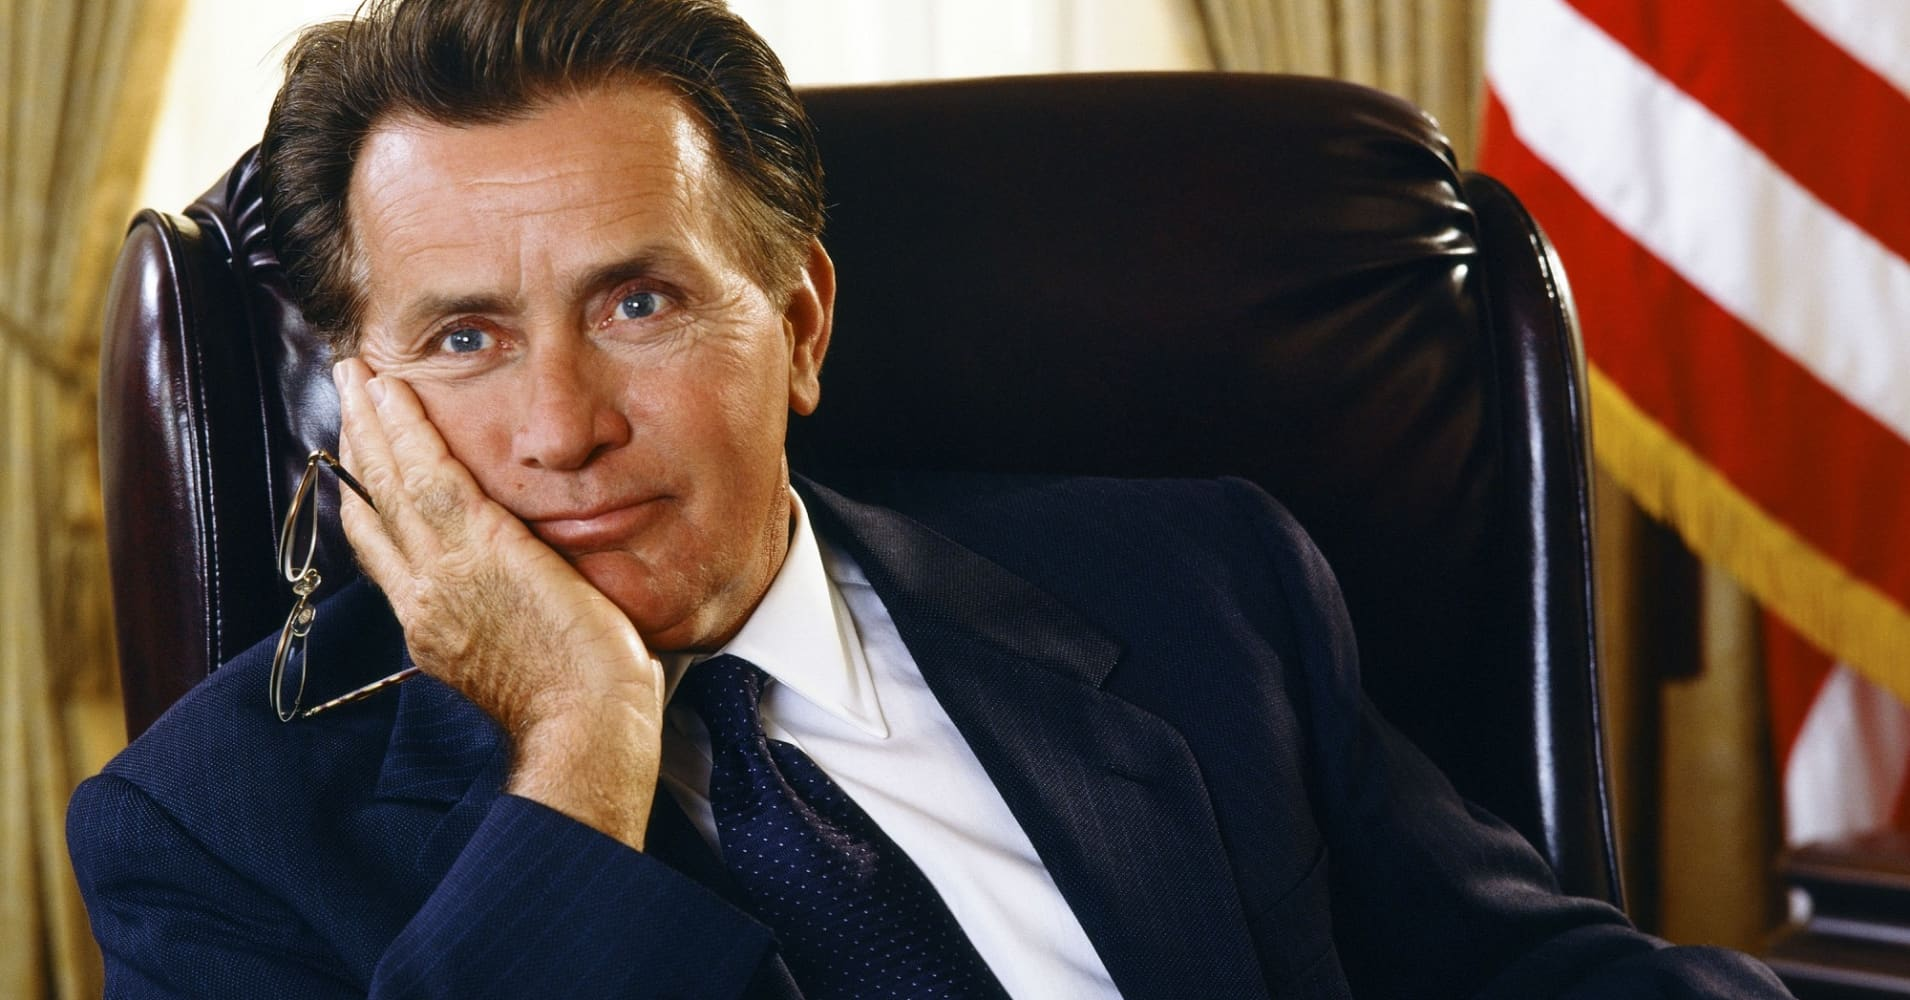 Martin Sheen as President Josiah 'Jed' Bartlet on 'The West Wing.'